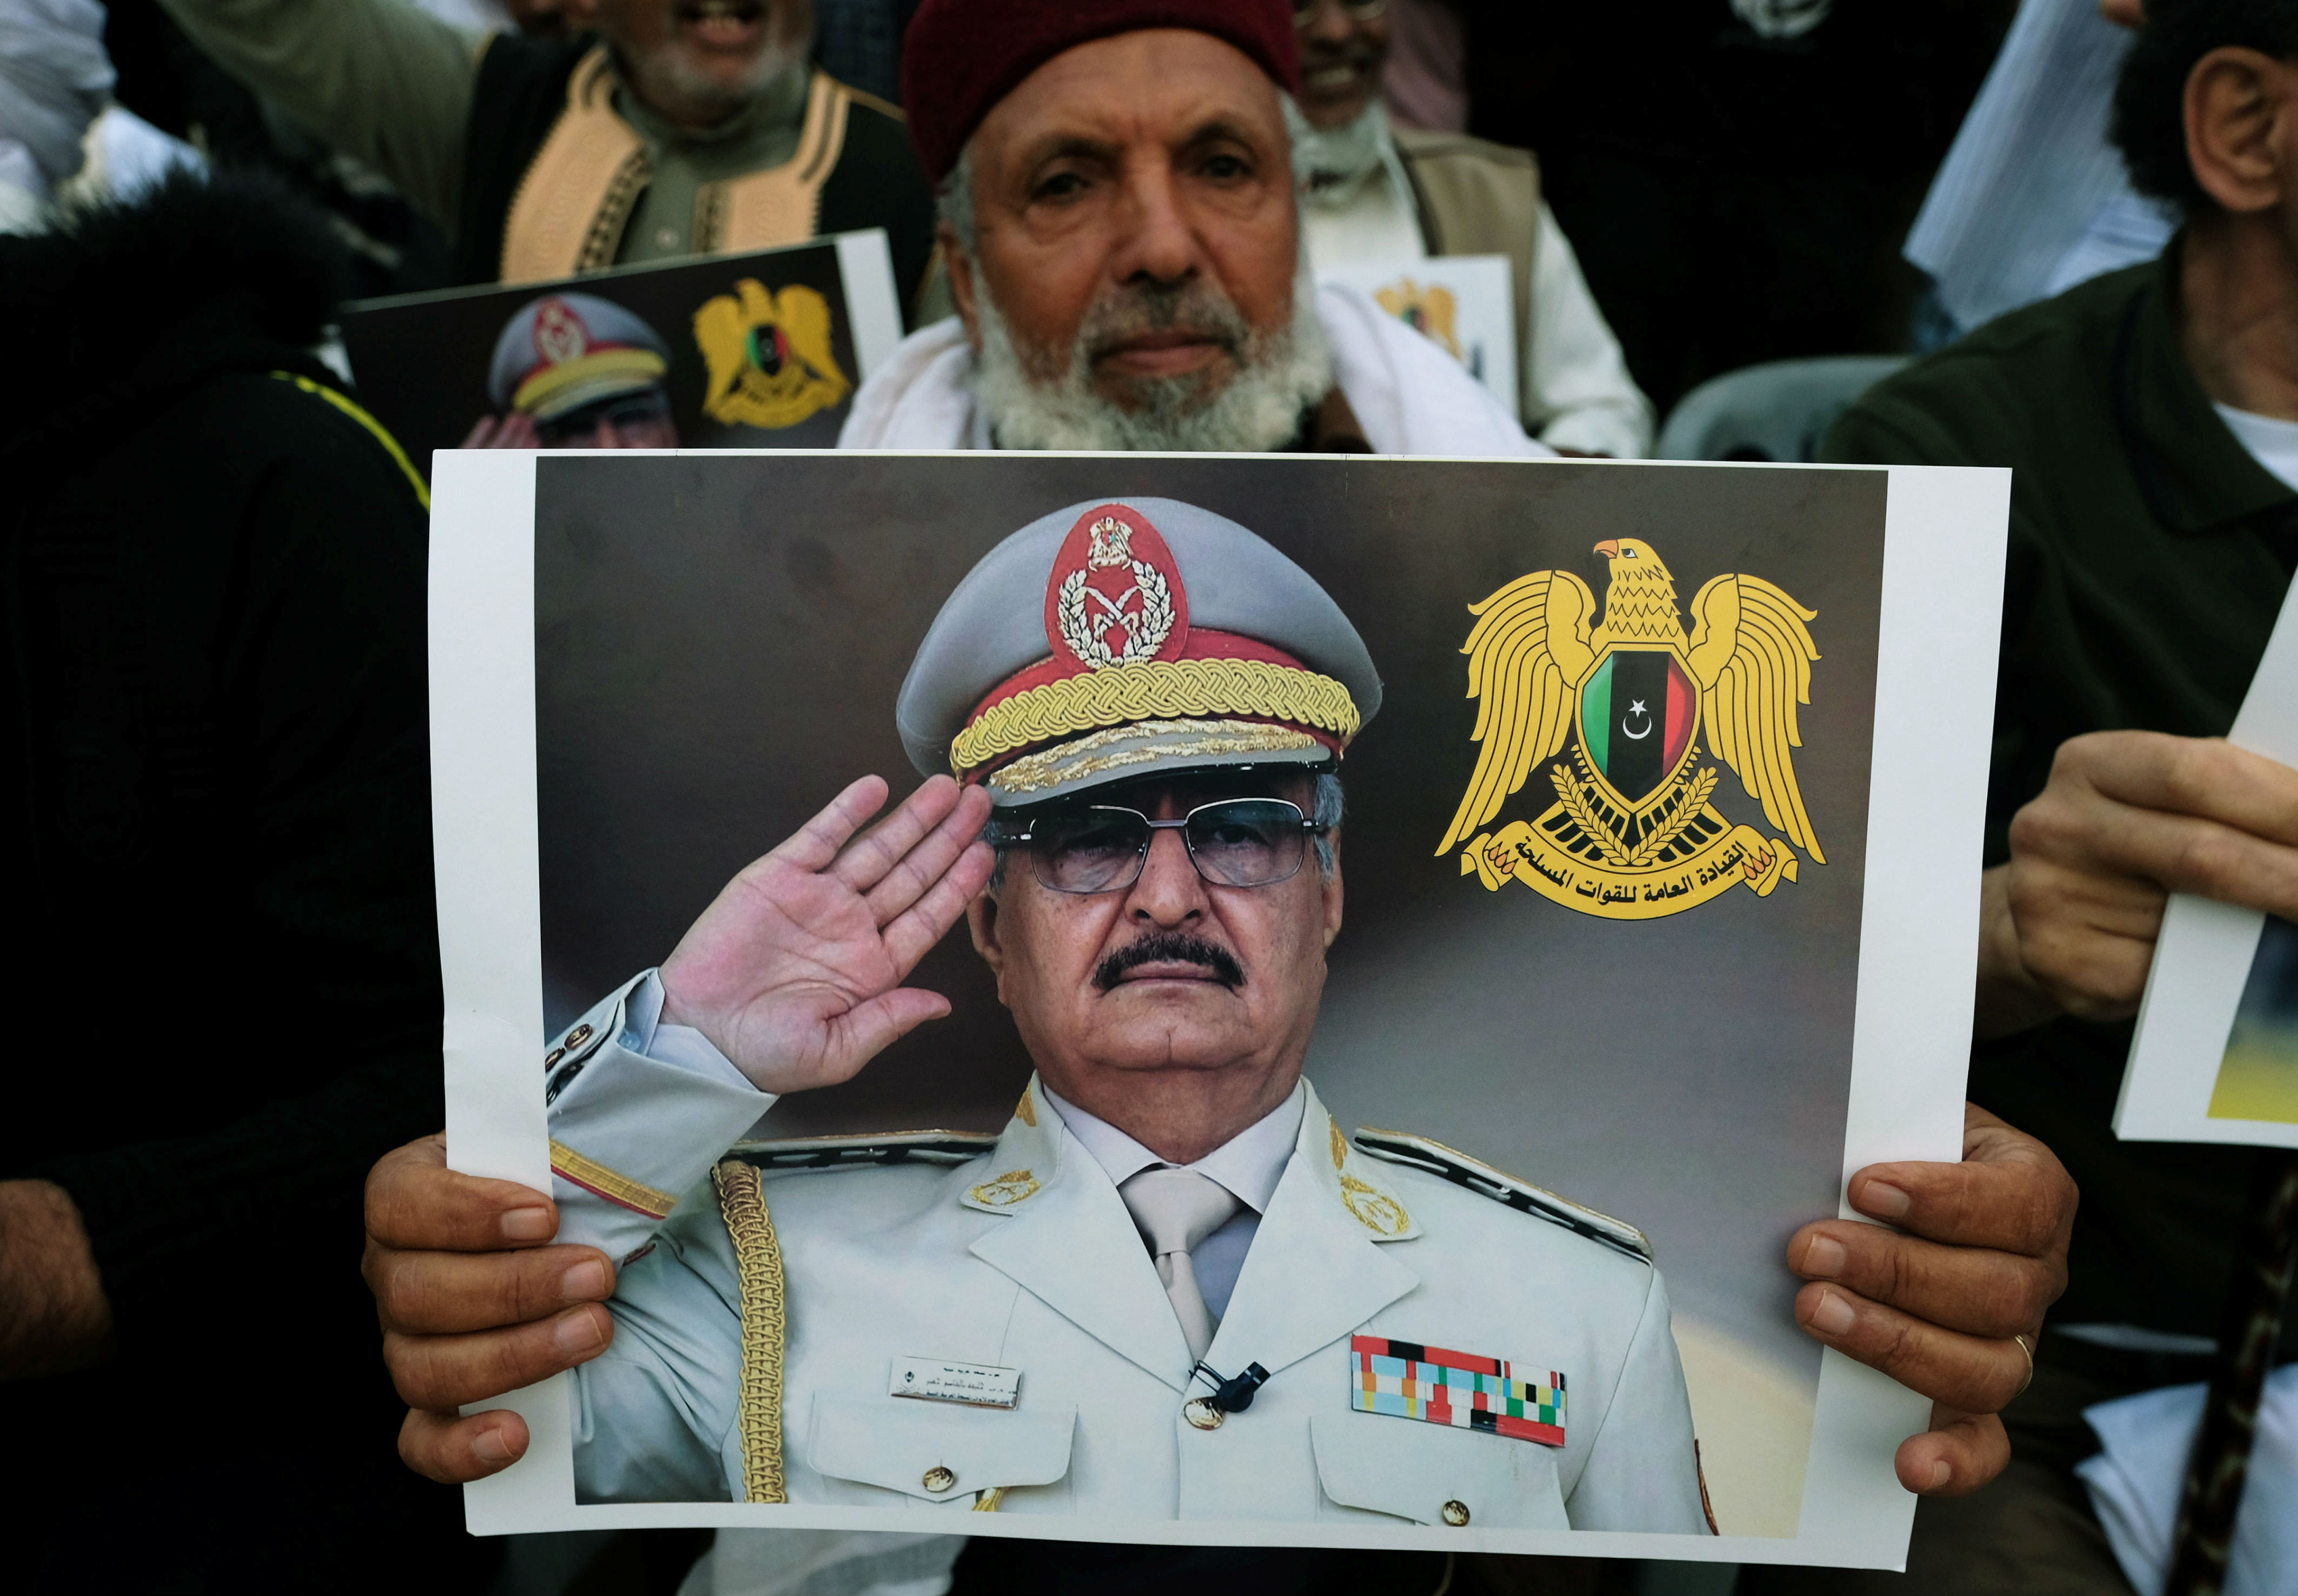 A Libyan man carries a picture of Khalifa Haftar during a demonstration to support Libyan National Army offensive against Tripoli, in Benghazi (Reuters)